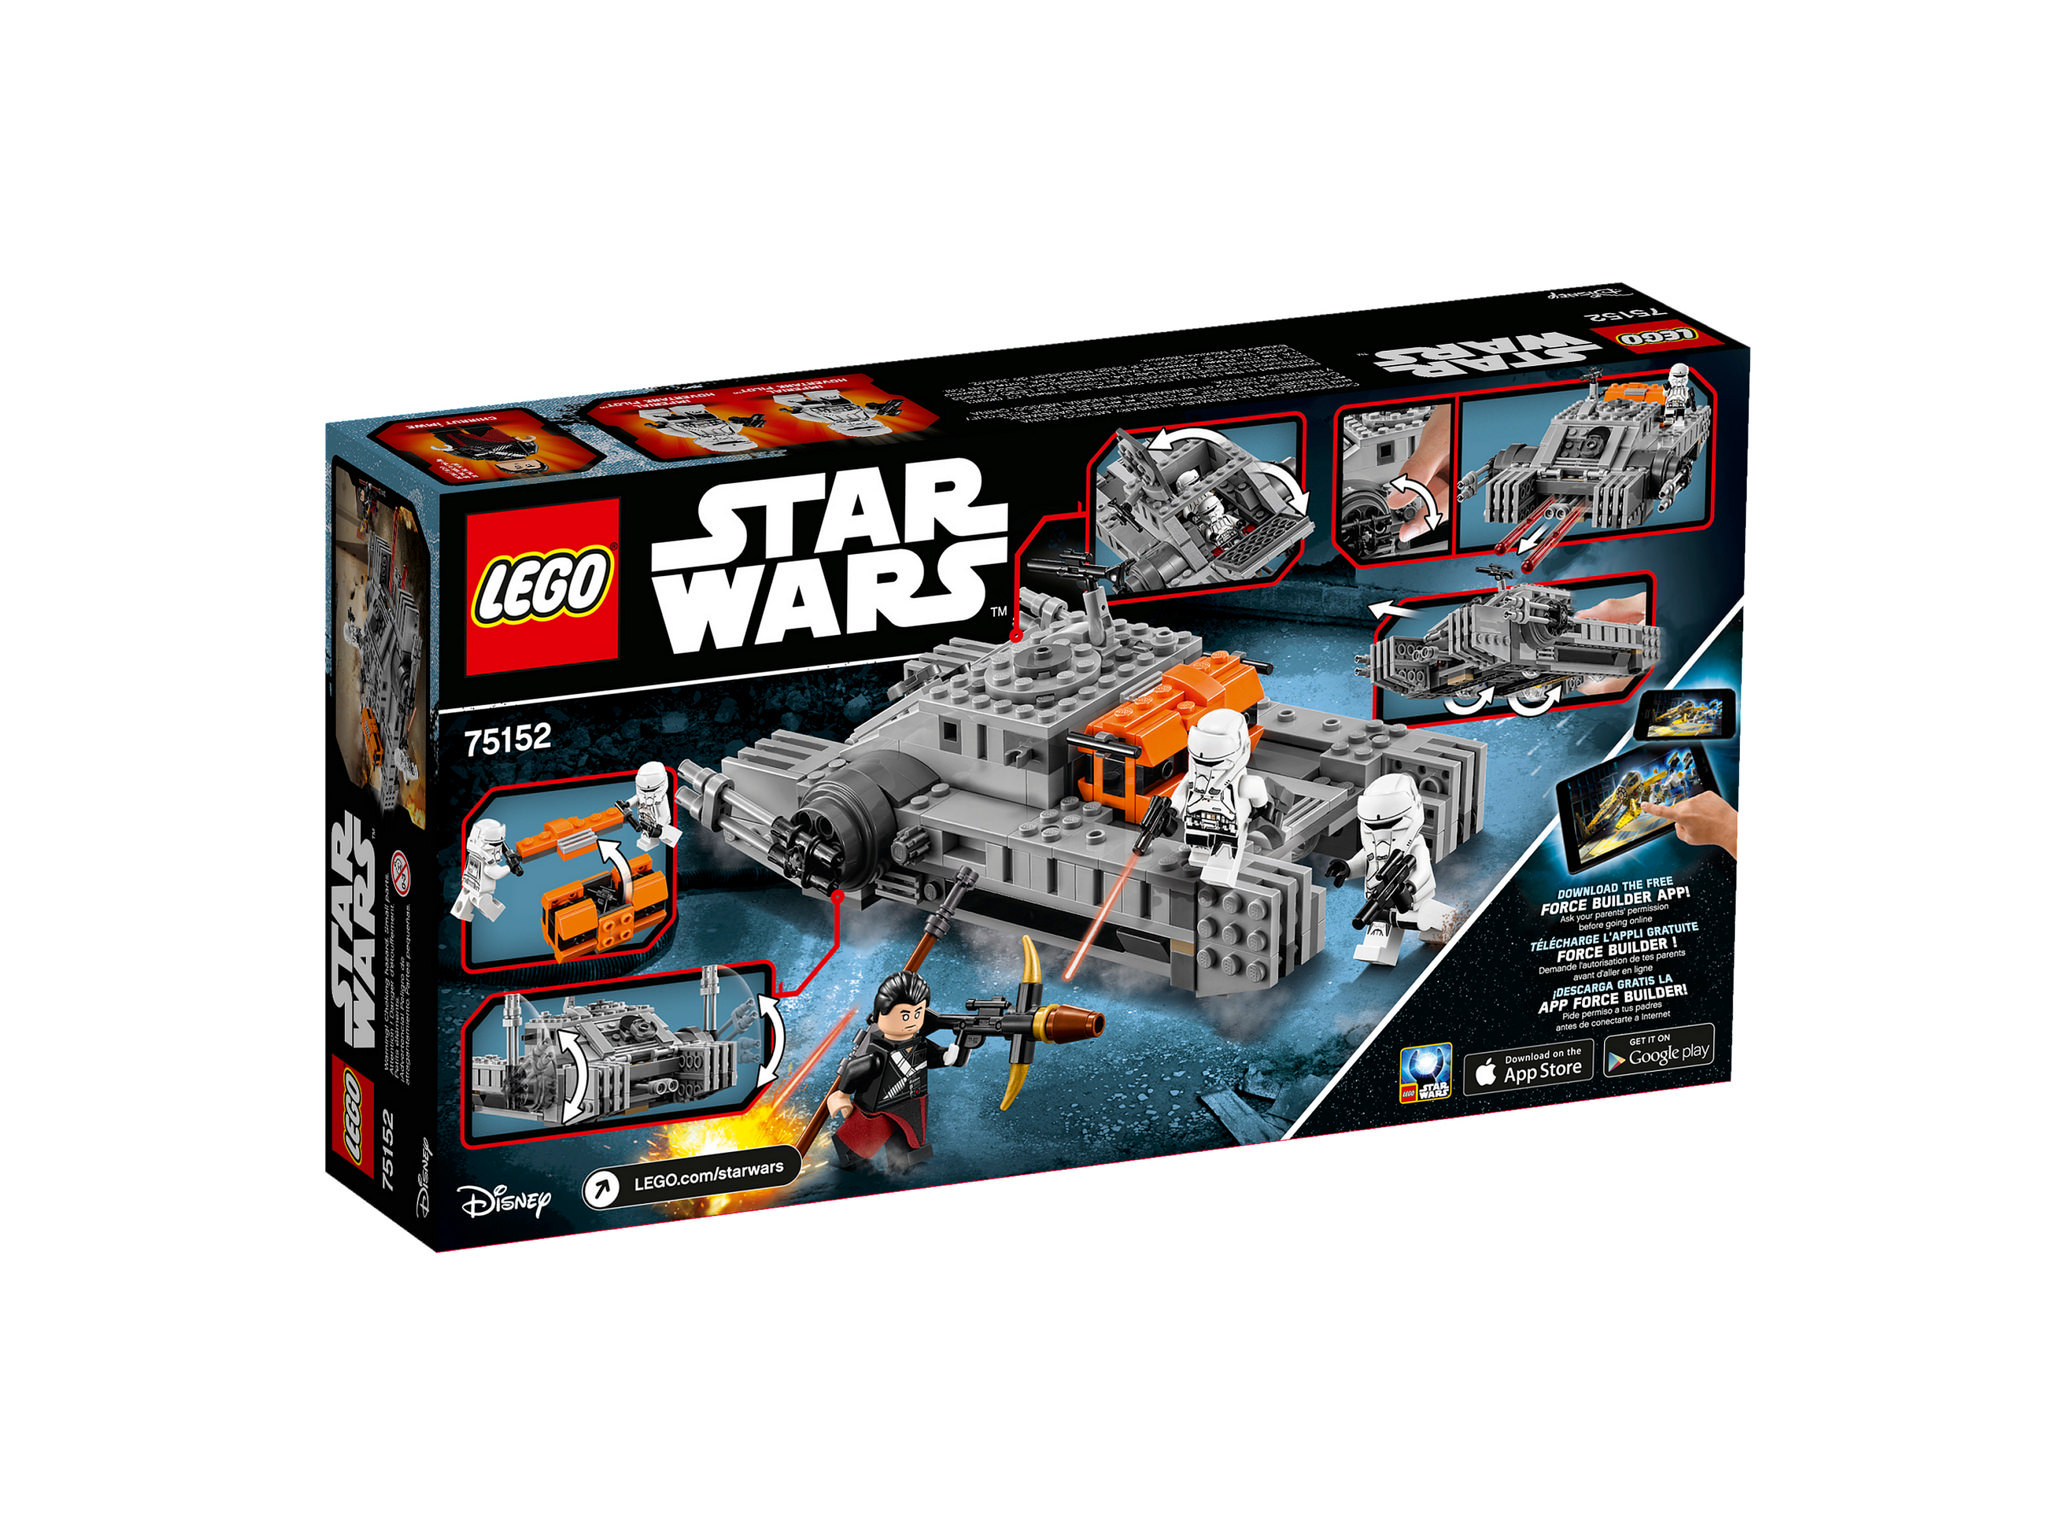 LEGO Star Wars 75152 - Imperial Assault Hovertank